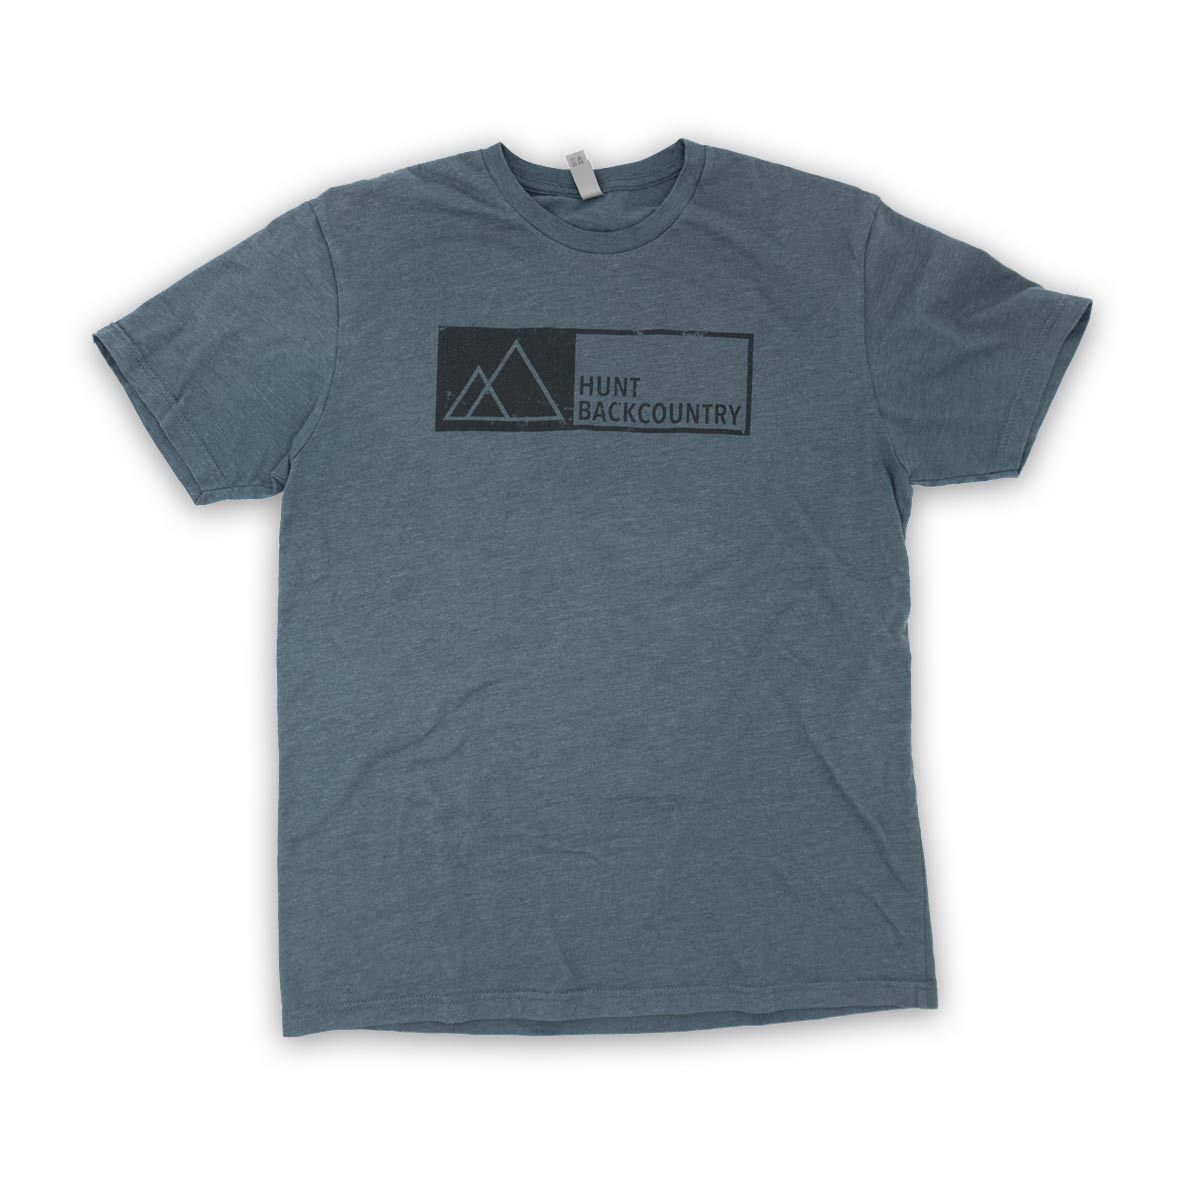 Hunt Backcountry Podcast T-Shirt